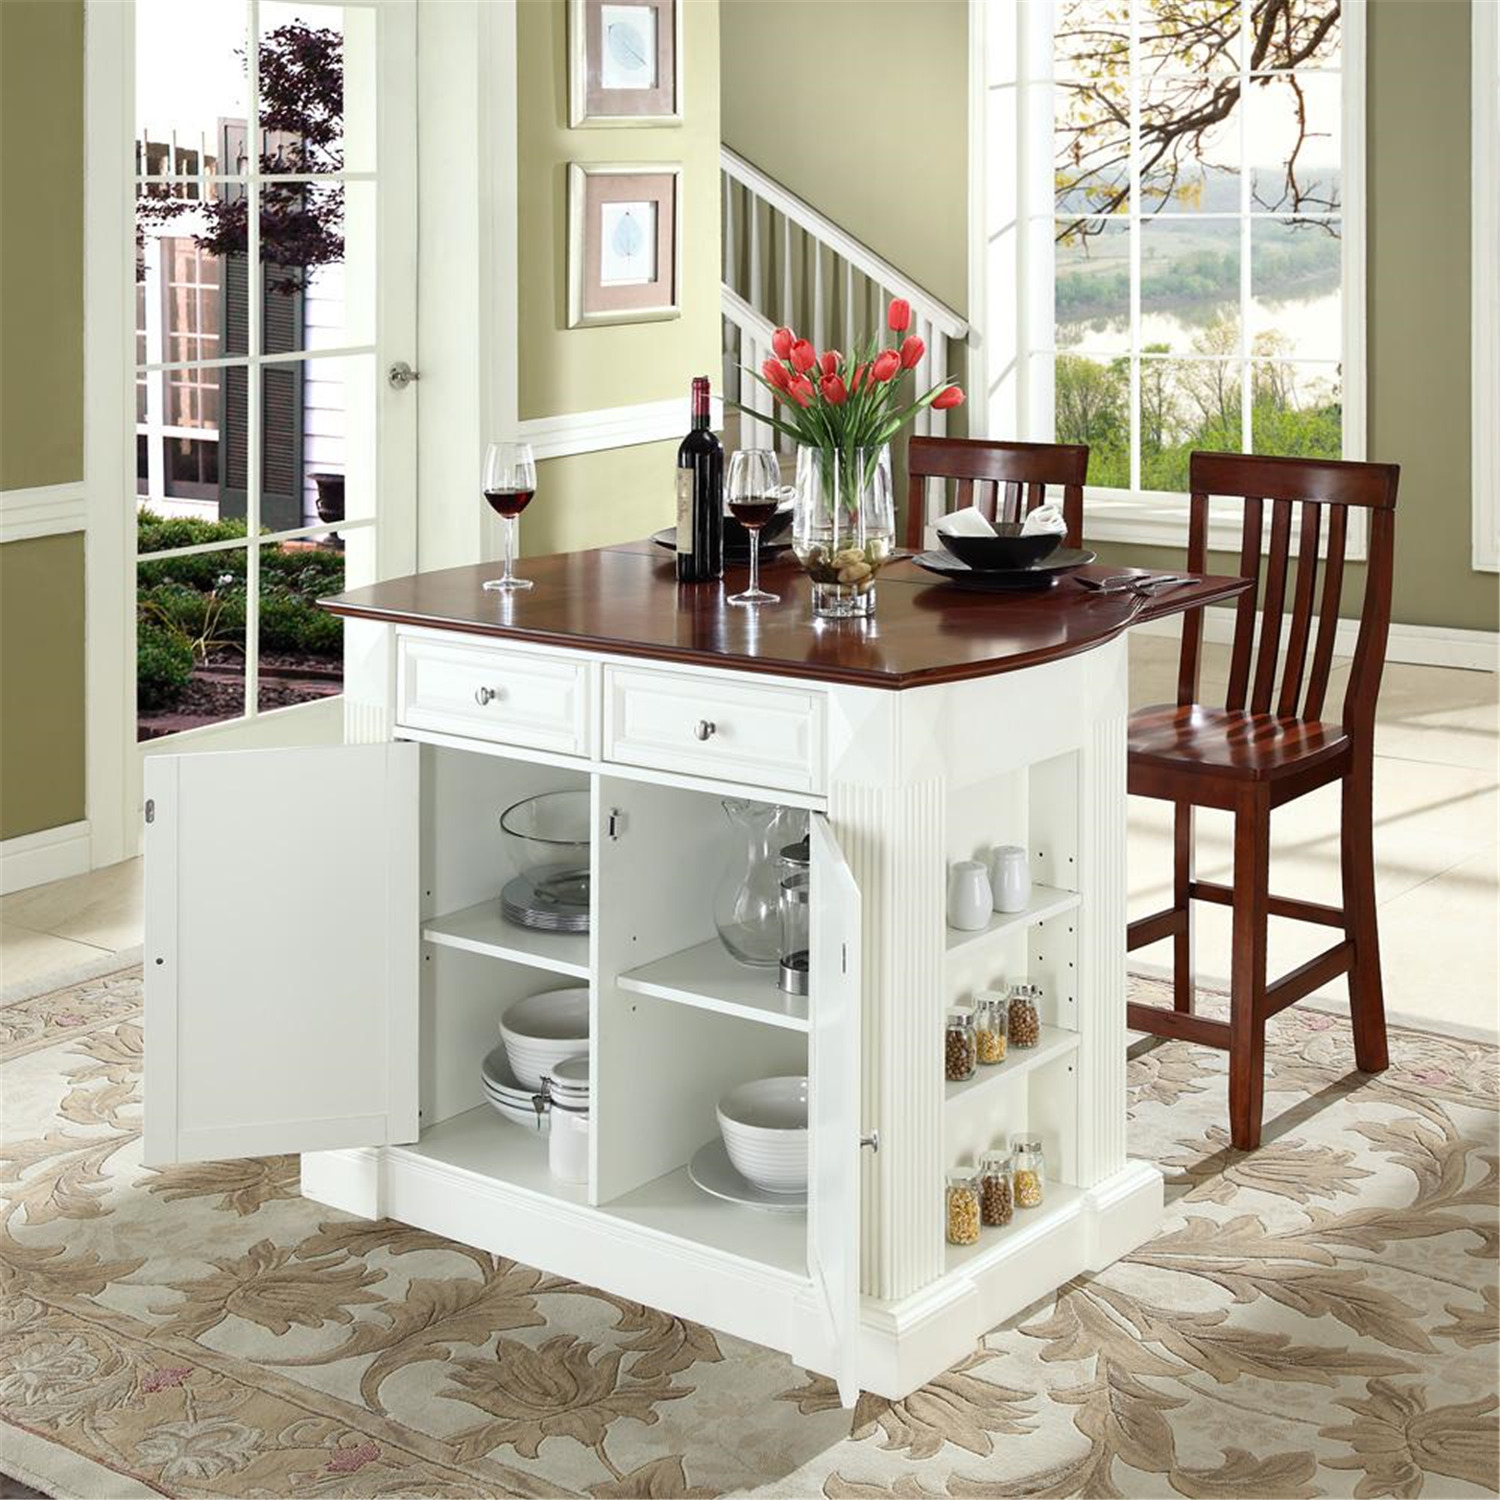 24 Kitchen Island Furniture, Home Goods, Appliances, Athletic Gear, Fitness